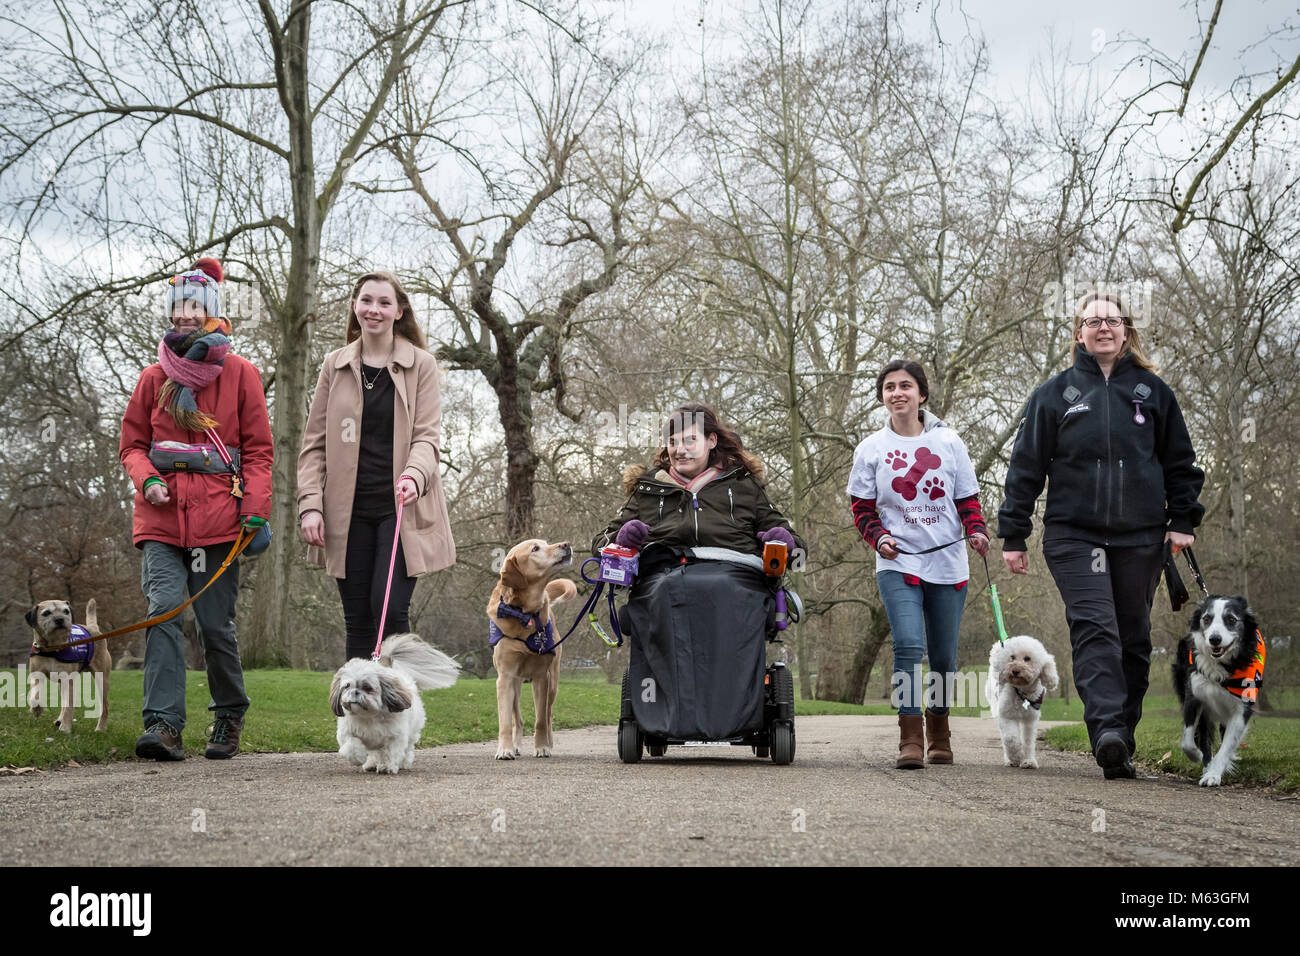 London, UK. 27th Feb, 2018. The Kennel Club photocall for the five finalists announced for the prestigious Crufts - Stock Image